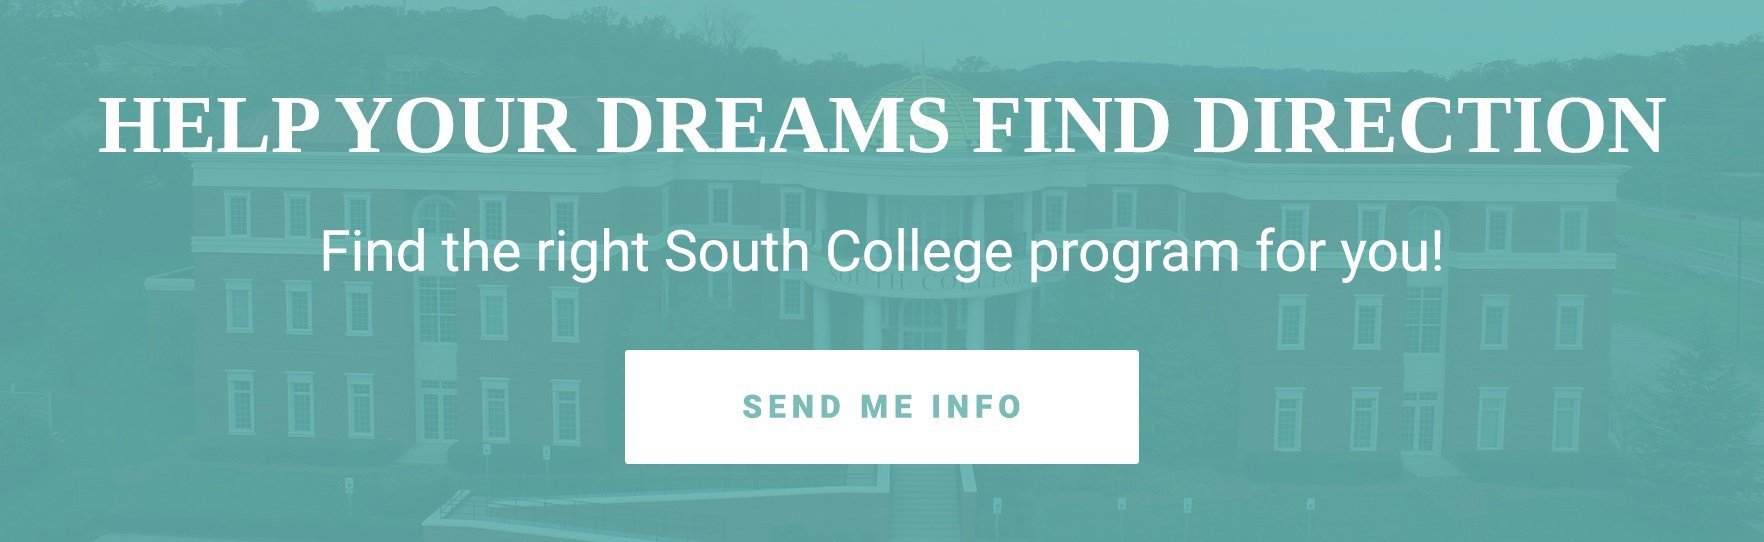 Help Your Dreams Find Direction. Find the right South College program for you! Send Me Info